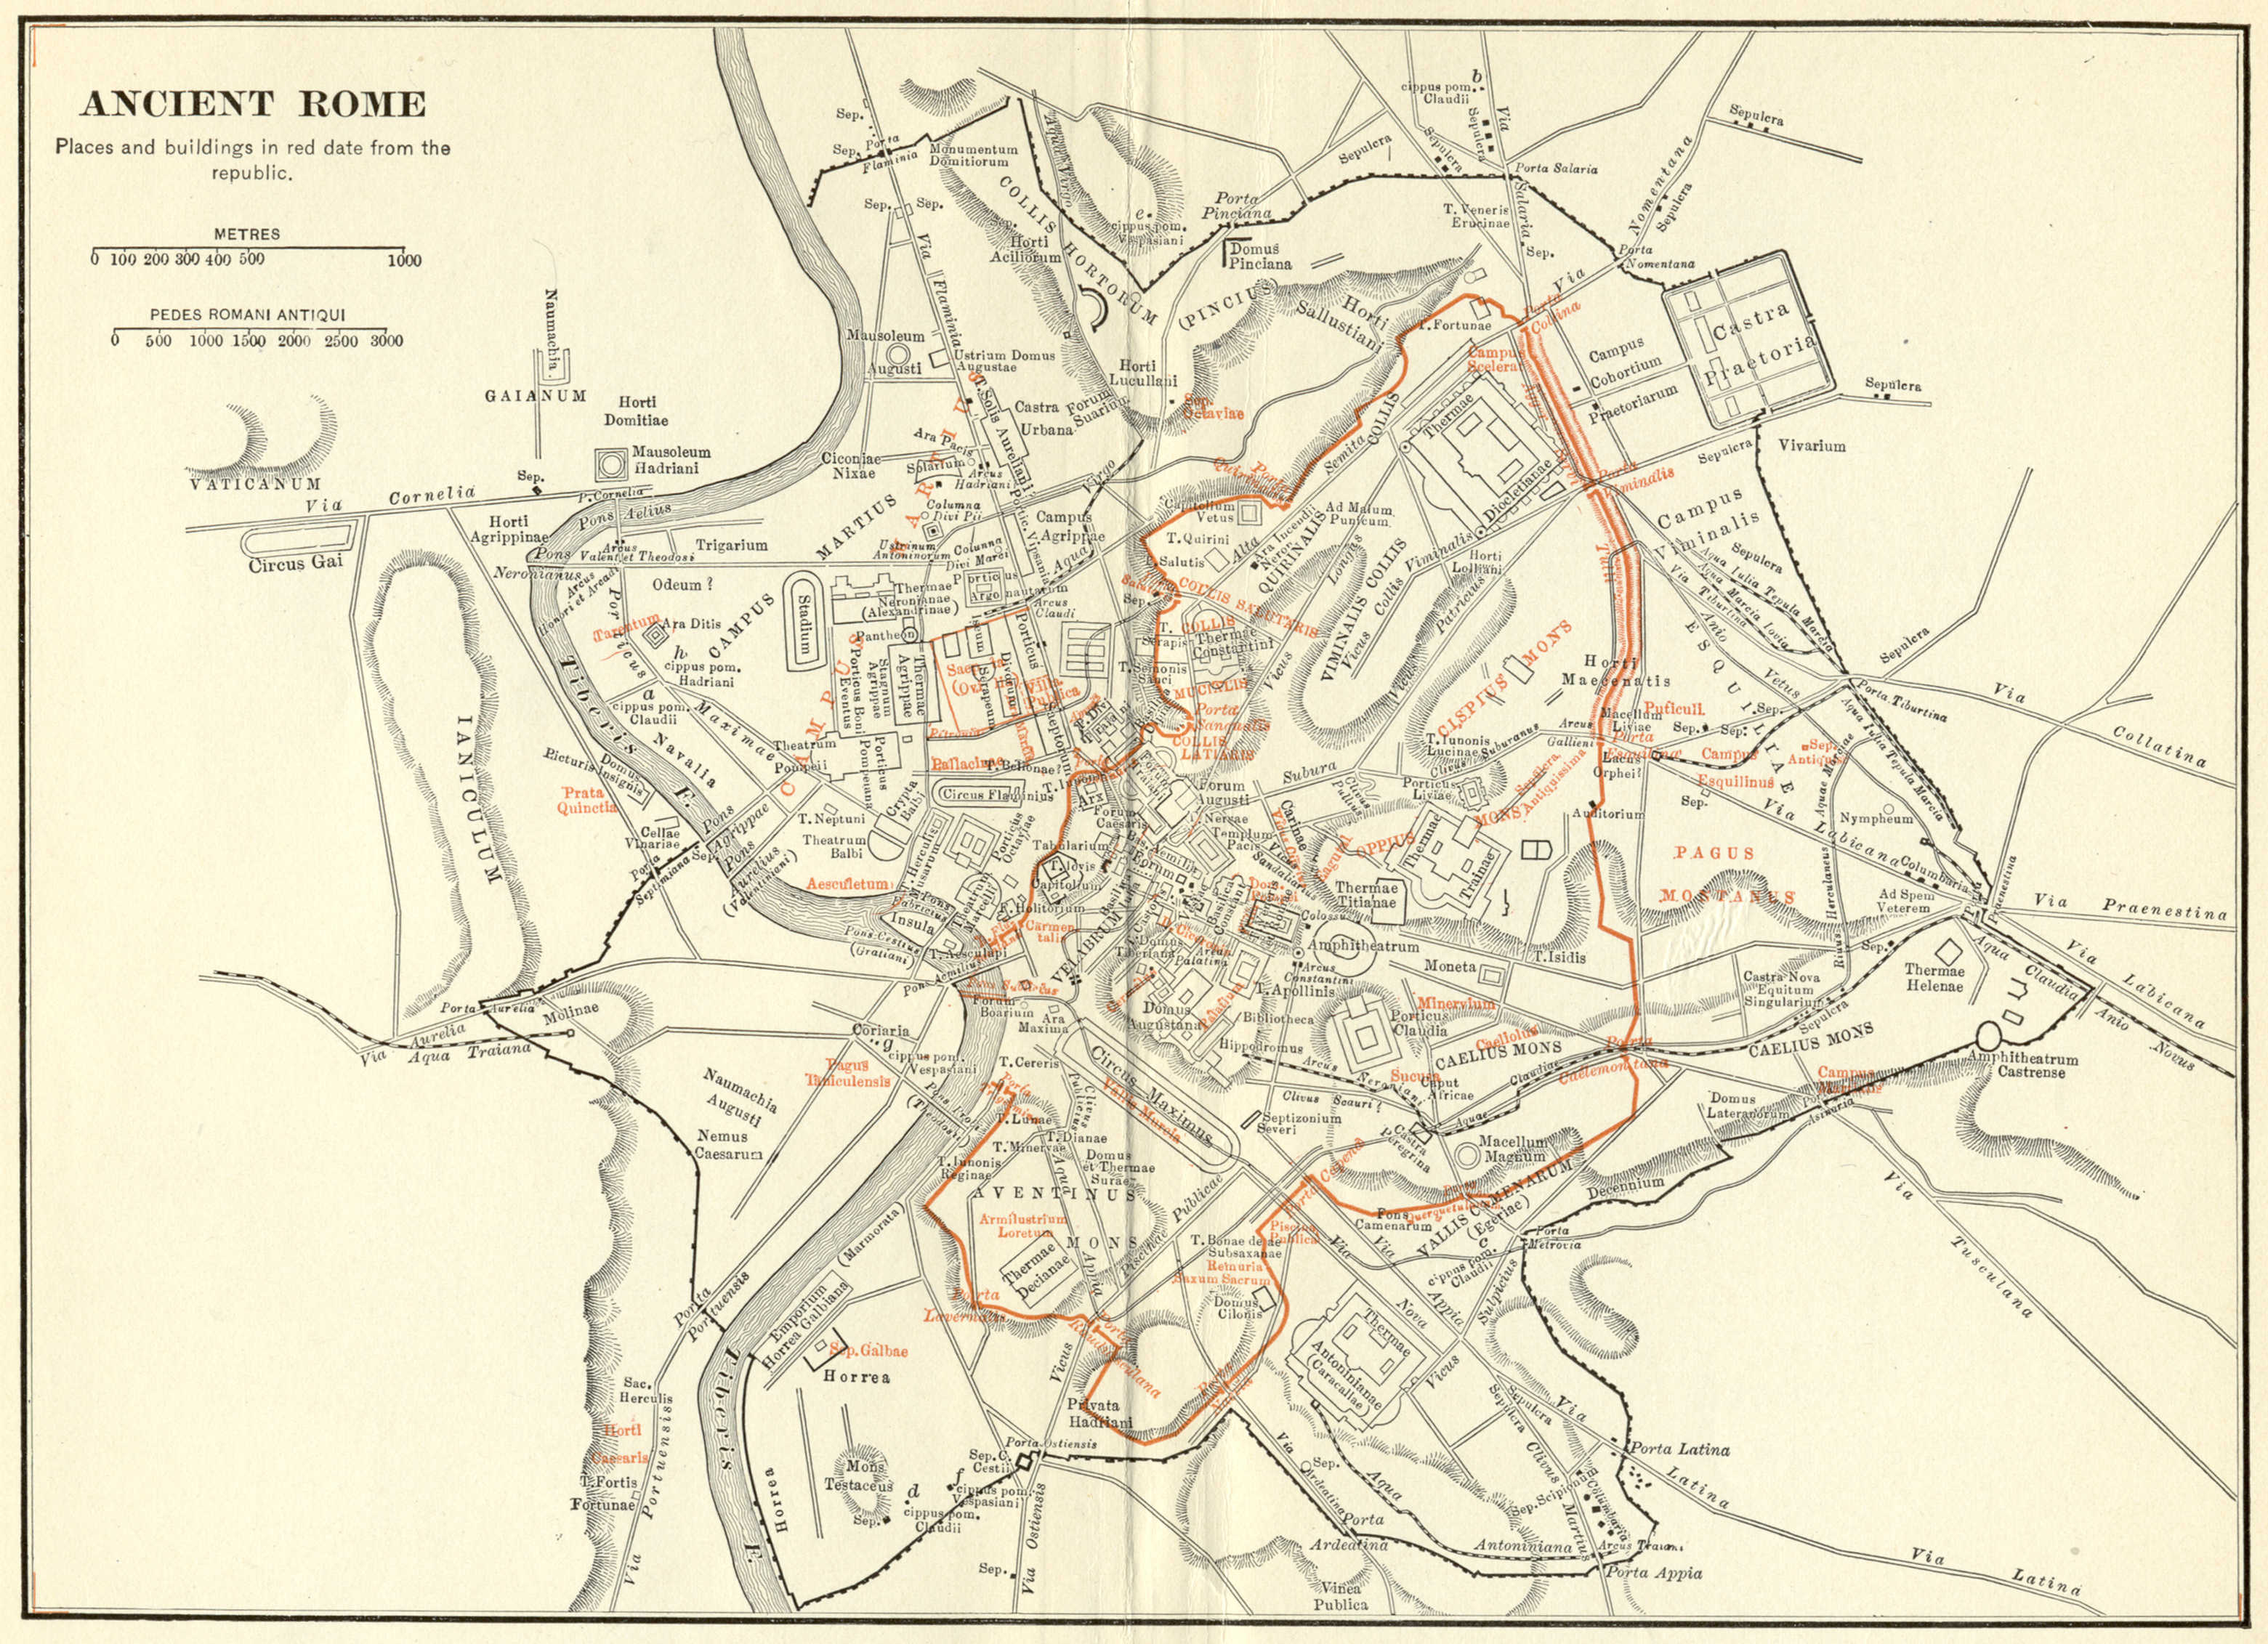 Ancient Rome Map Rome Italy mappery